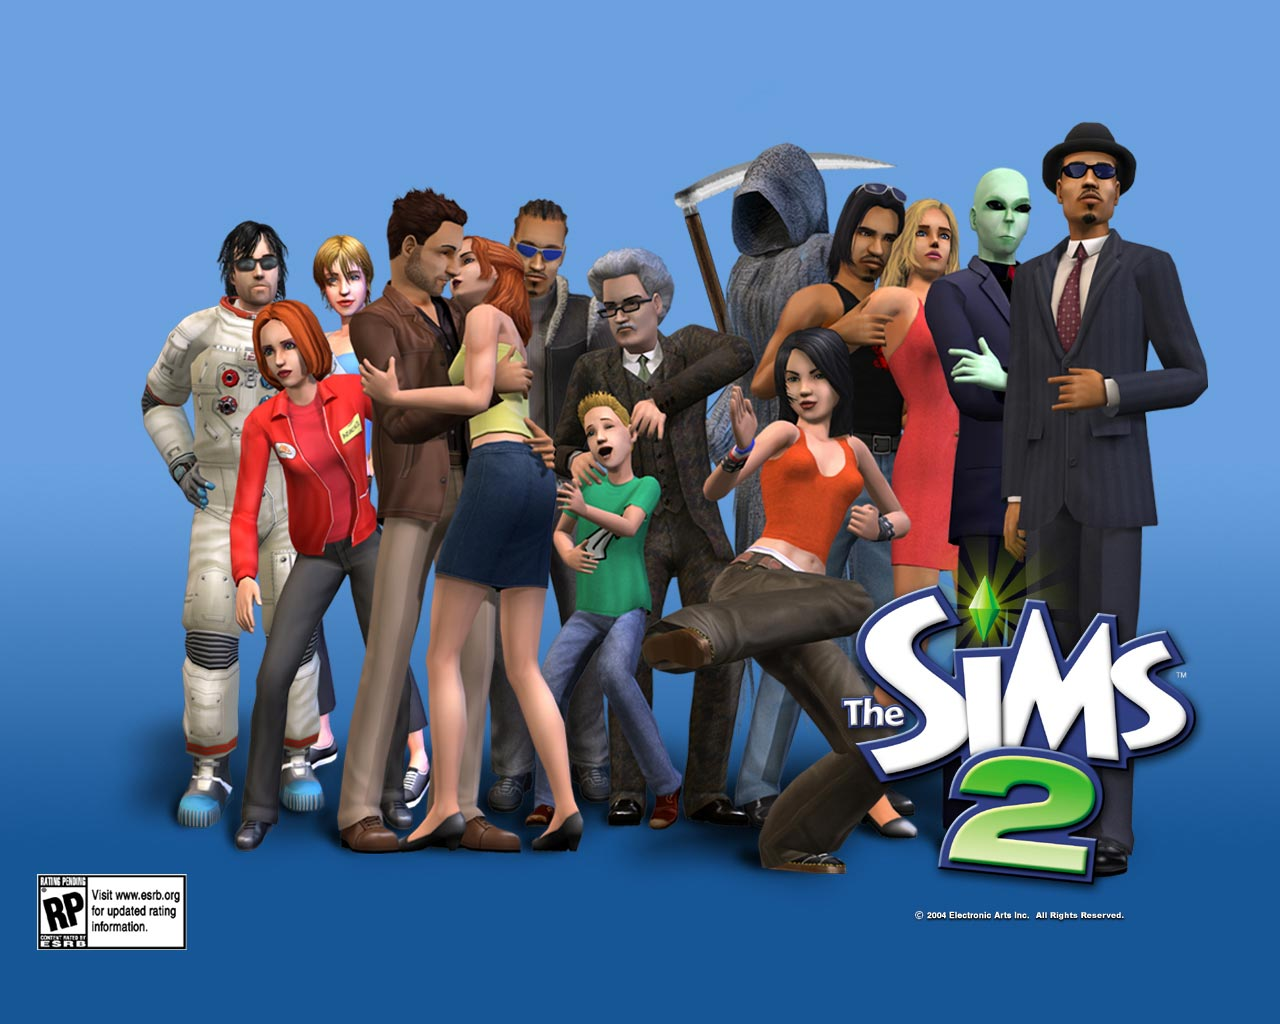 Télécharger The Sims 2 Ultimate Collection gratuitement est possible